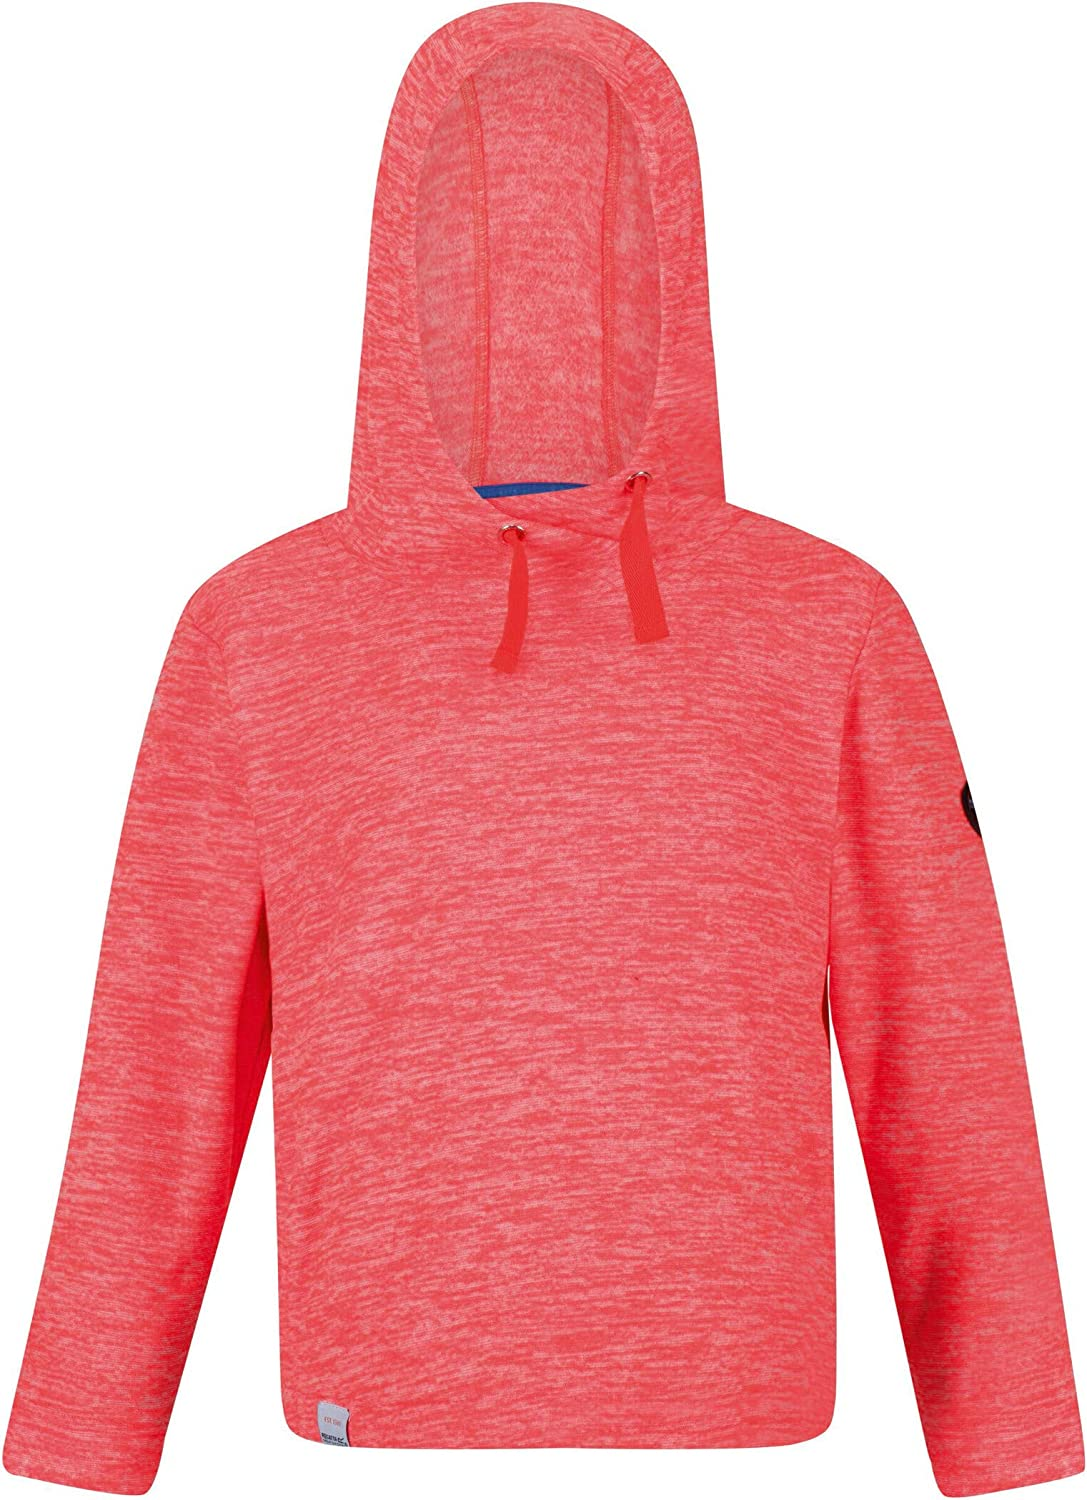 Regatta Childrens Kalina Wraparound Hood Fleece